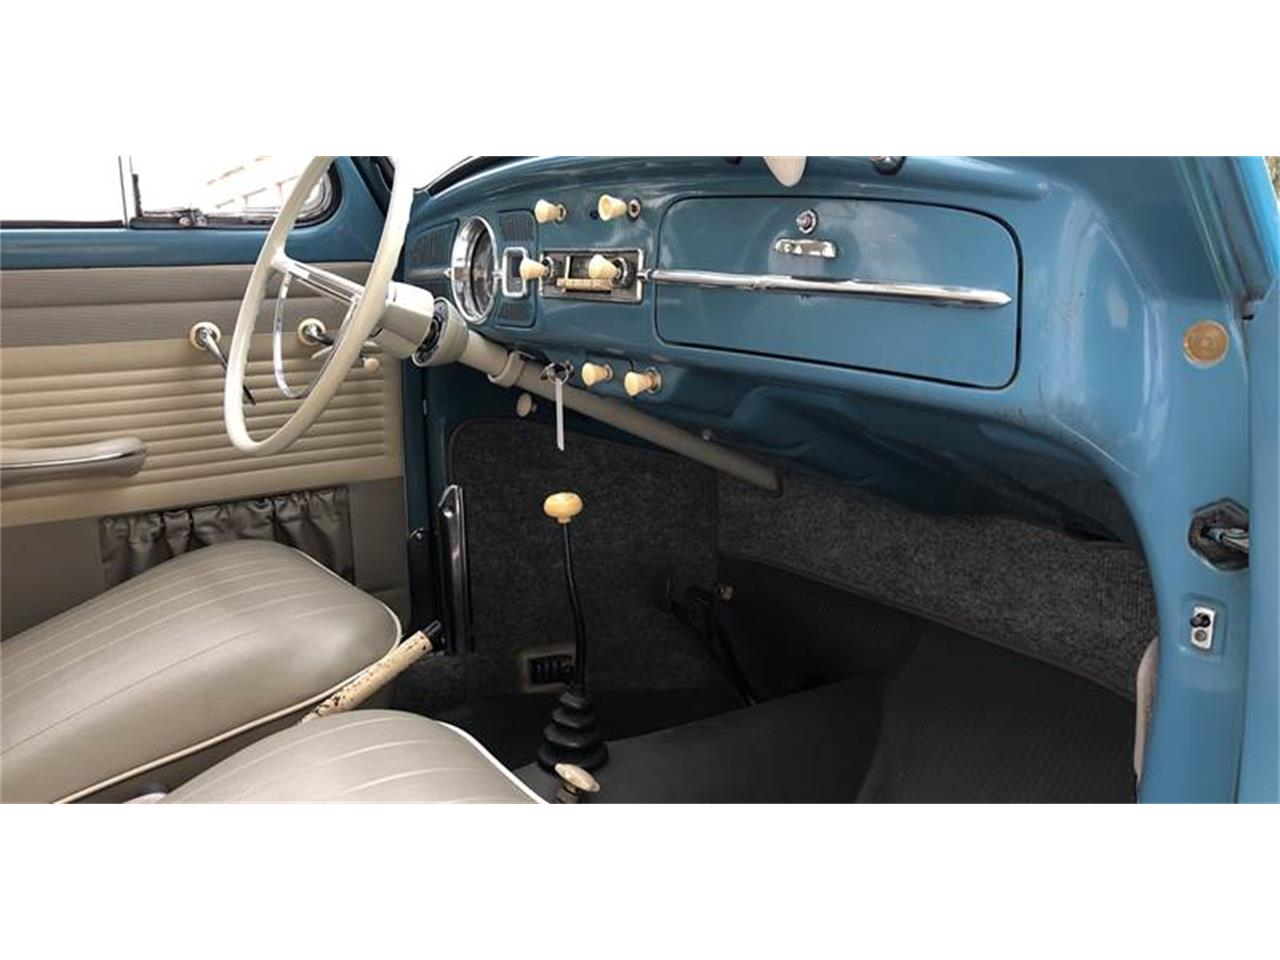 Large Picture of 1963 Volkswagen Beetle located in Brea California Auction Vehicle Offered by Highline Motorsports - QEU8